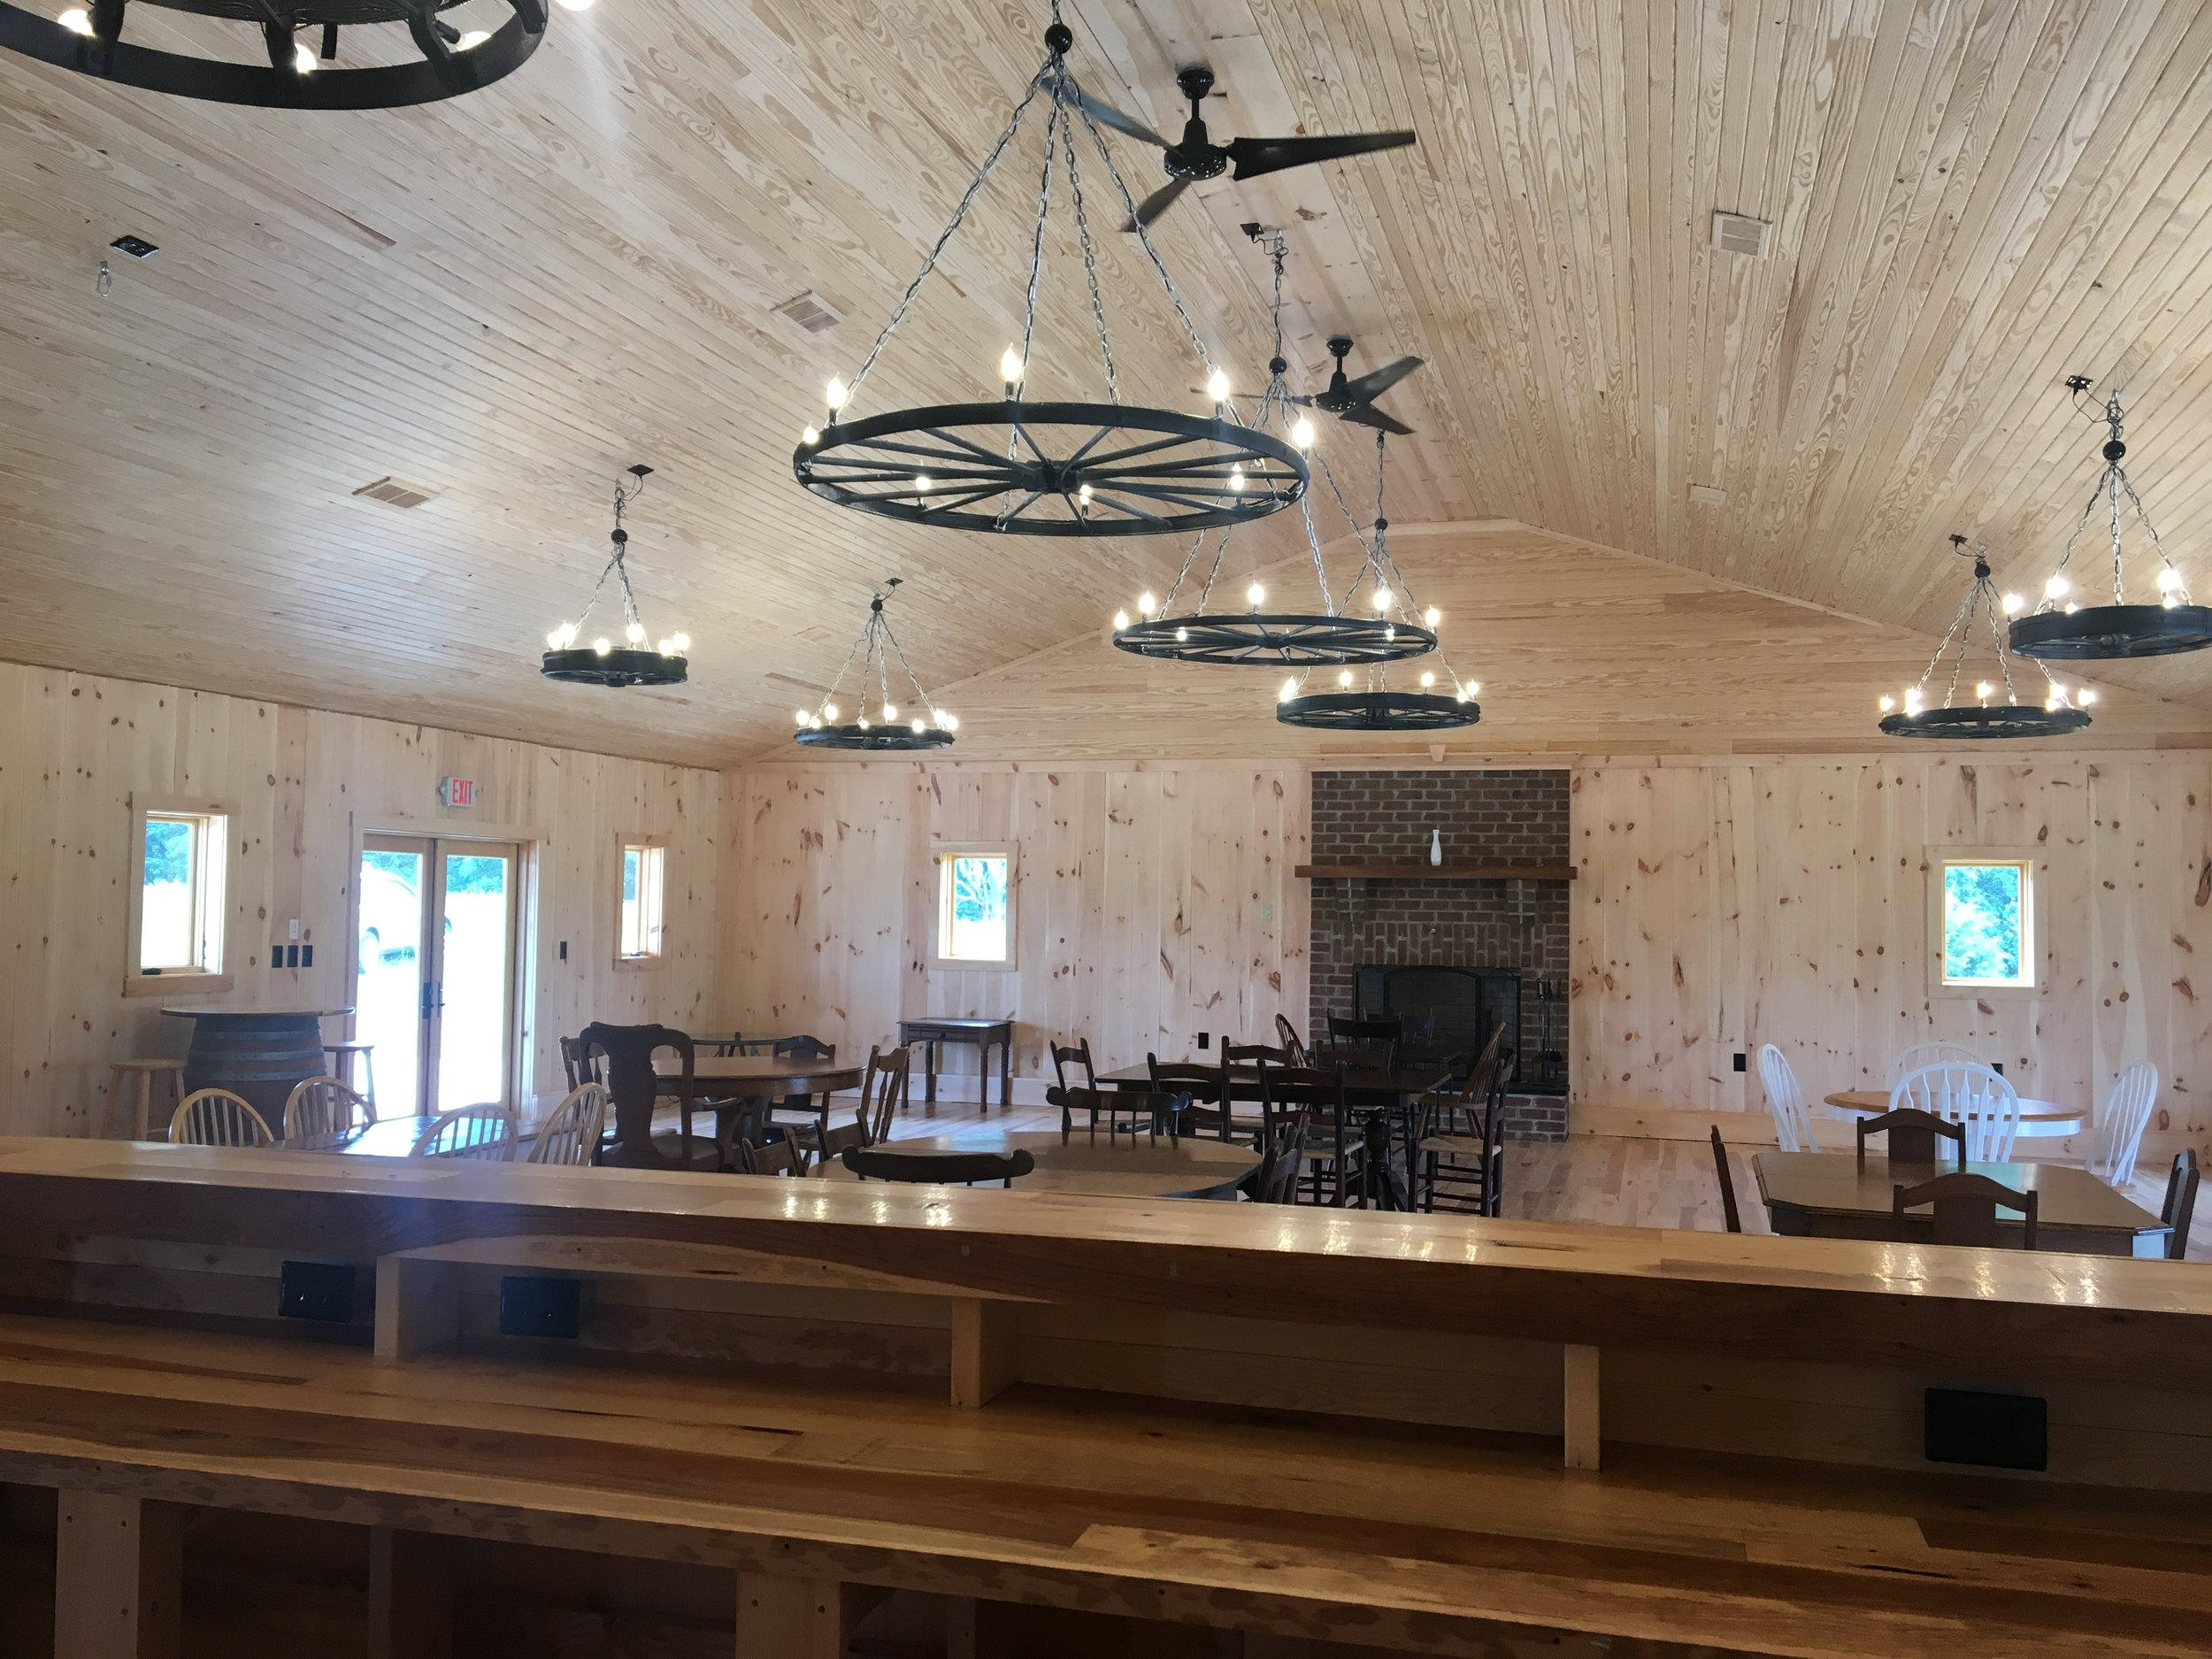 - If you're hosting an event, search no farther for the most scenic event setting in Madison County. From weddings to corporate retreats Blue Quartz Winery is a magnificent location for your next event. Contact us and we will customize our services to make your event unforgettable.